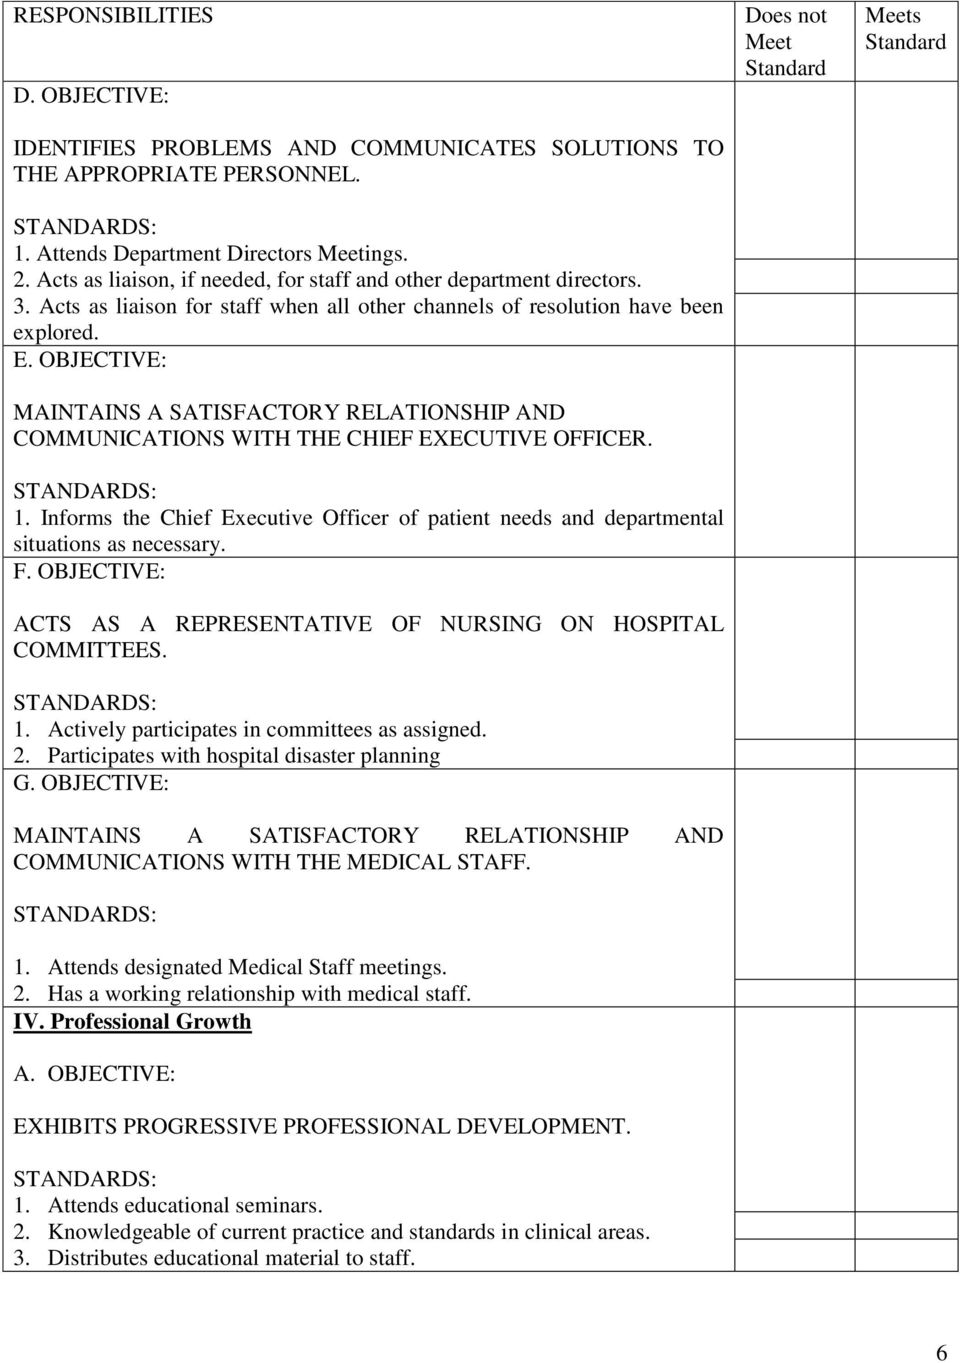 OBJECTIVE: MAINTAINS A SATISFACTORY RELATIONSHIP AND COMMUNICATIONS WITH THE CHIEF EXECUTIVE OFFICER. 1. Informs the Chief Executive Officer of patient needs and departmental situations as necessary.